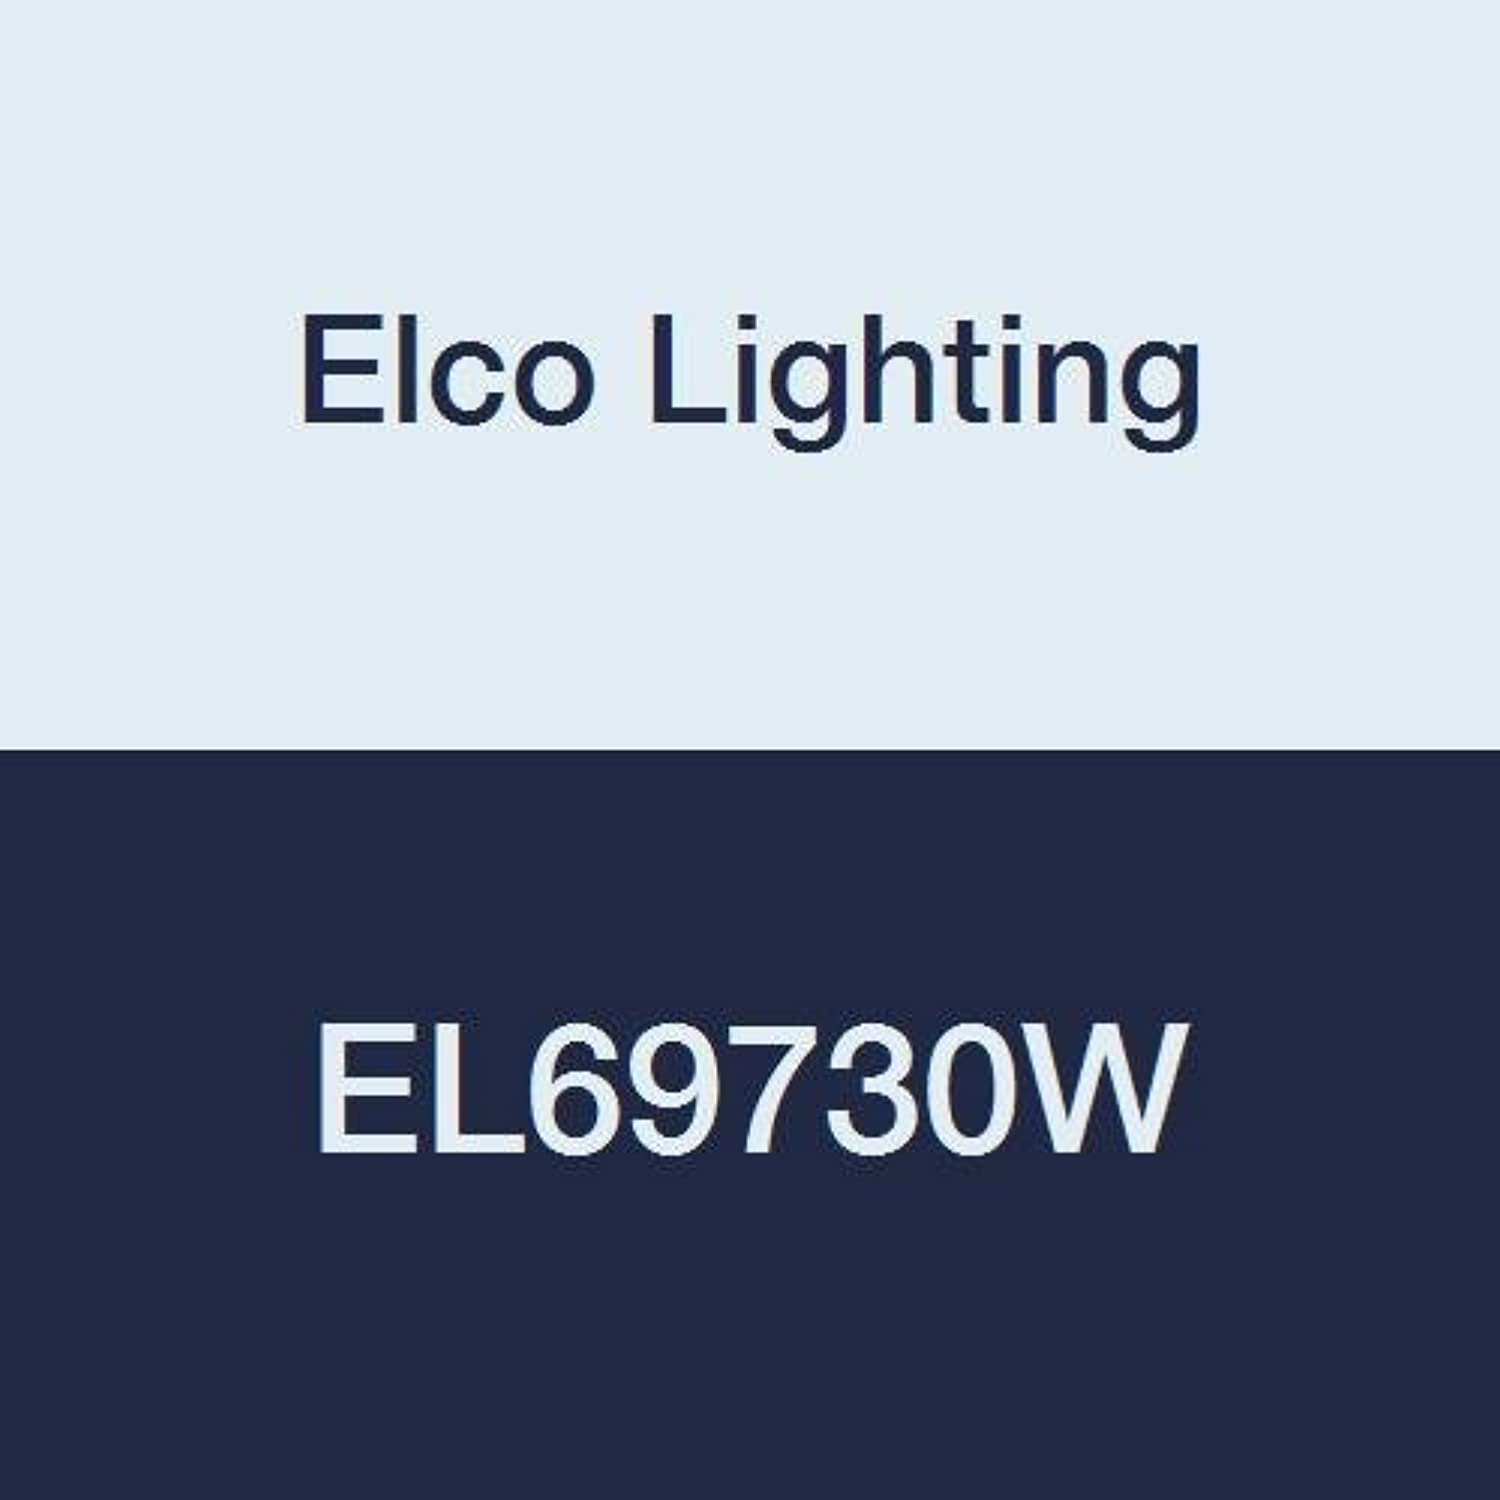 Elco Lighting EL69730W 6  Led Adjustable Pull-Down Insert